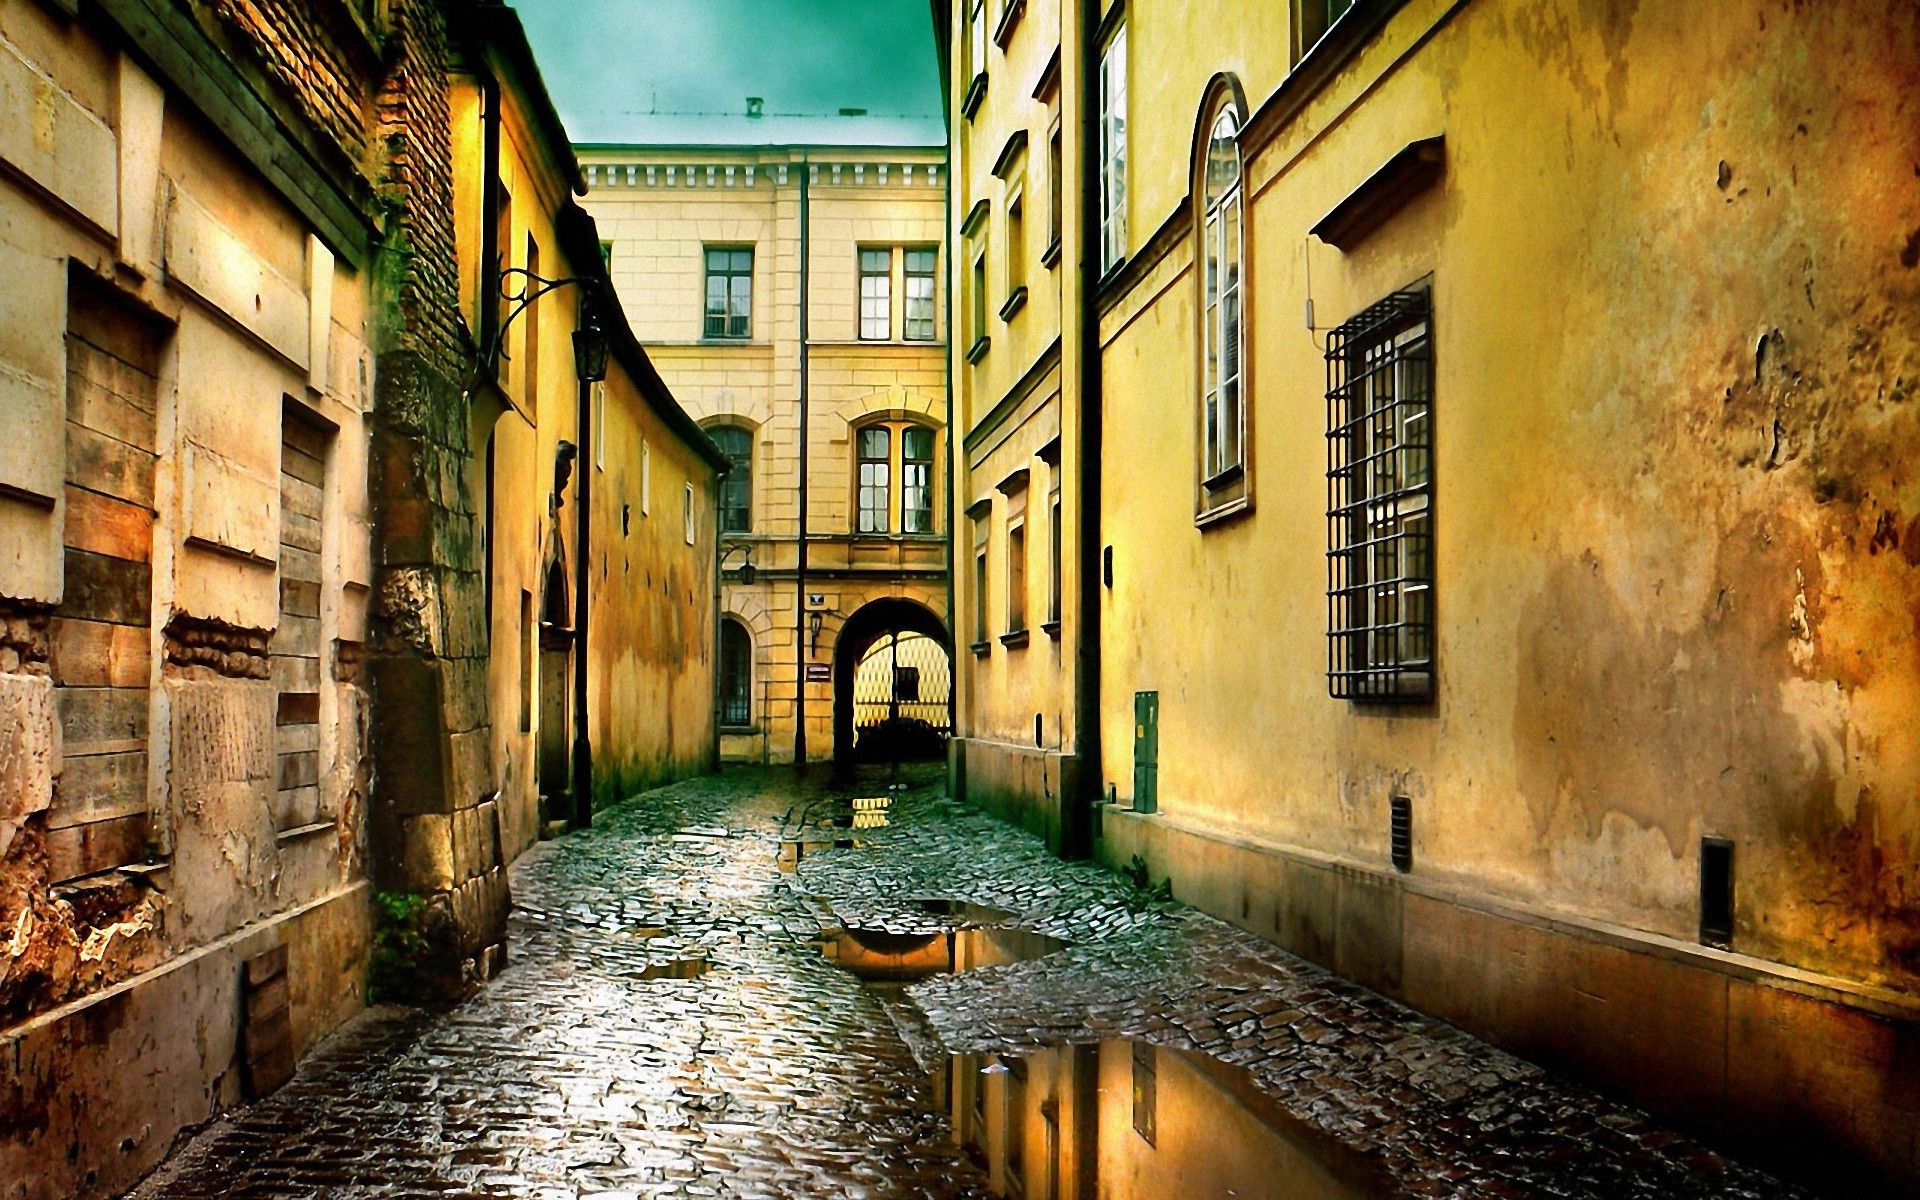 City Street, Awesome lonly colorful street HD 1080P wallpapers